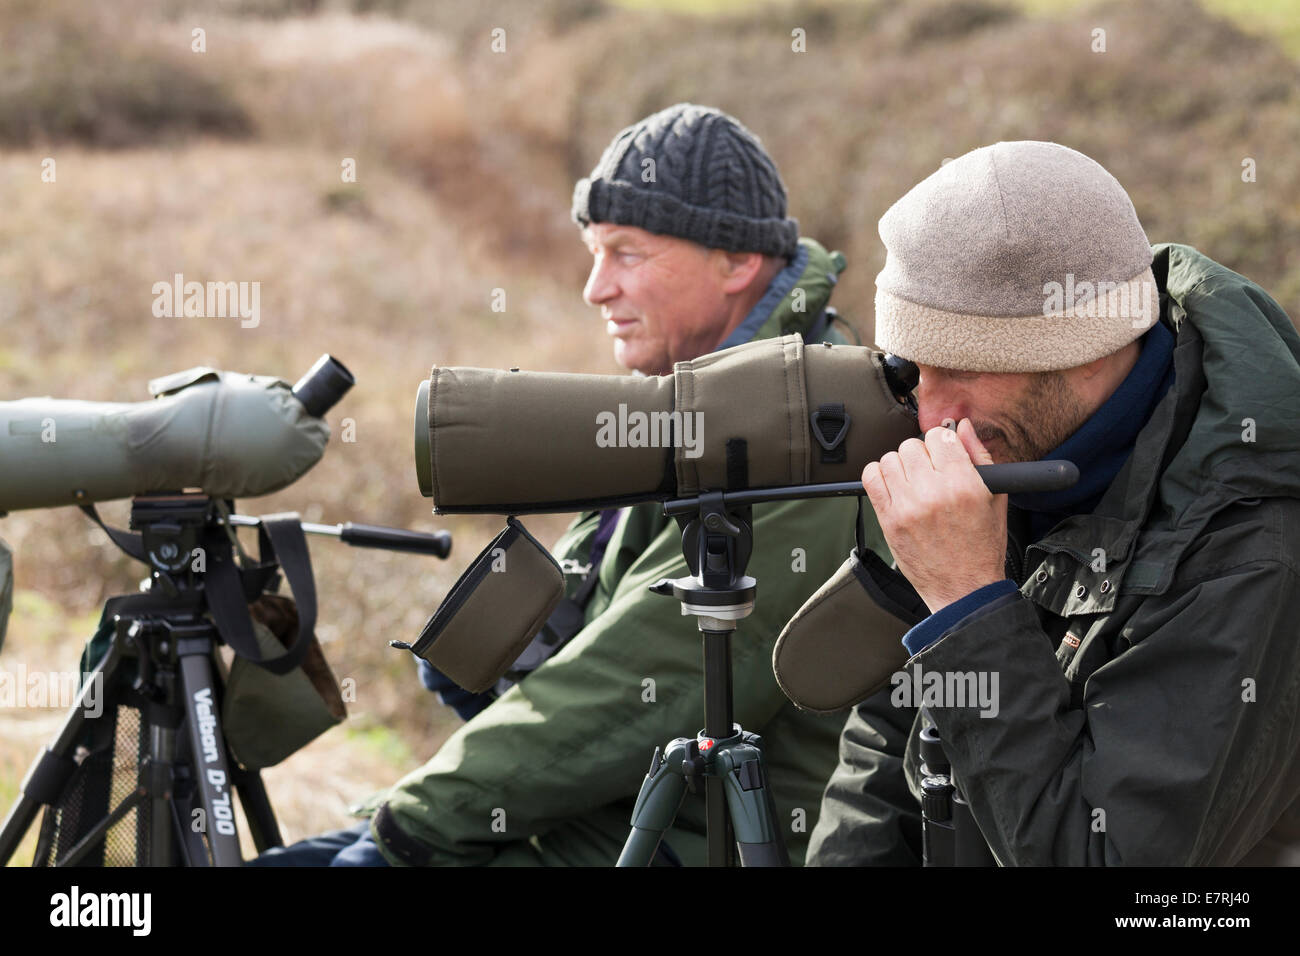 Close up of bird watchers with telescope on tripod in winter. - Stock Image